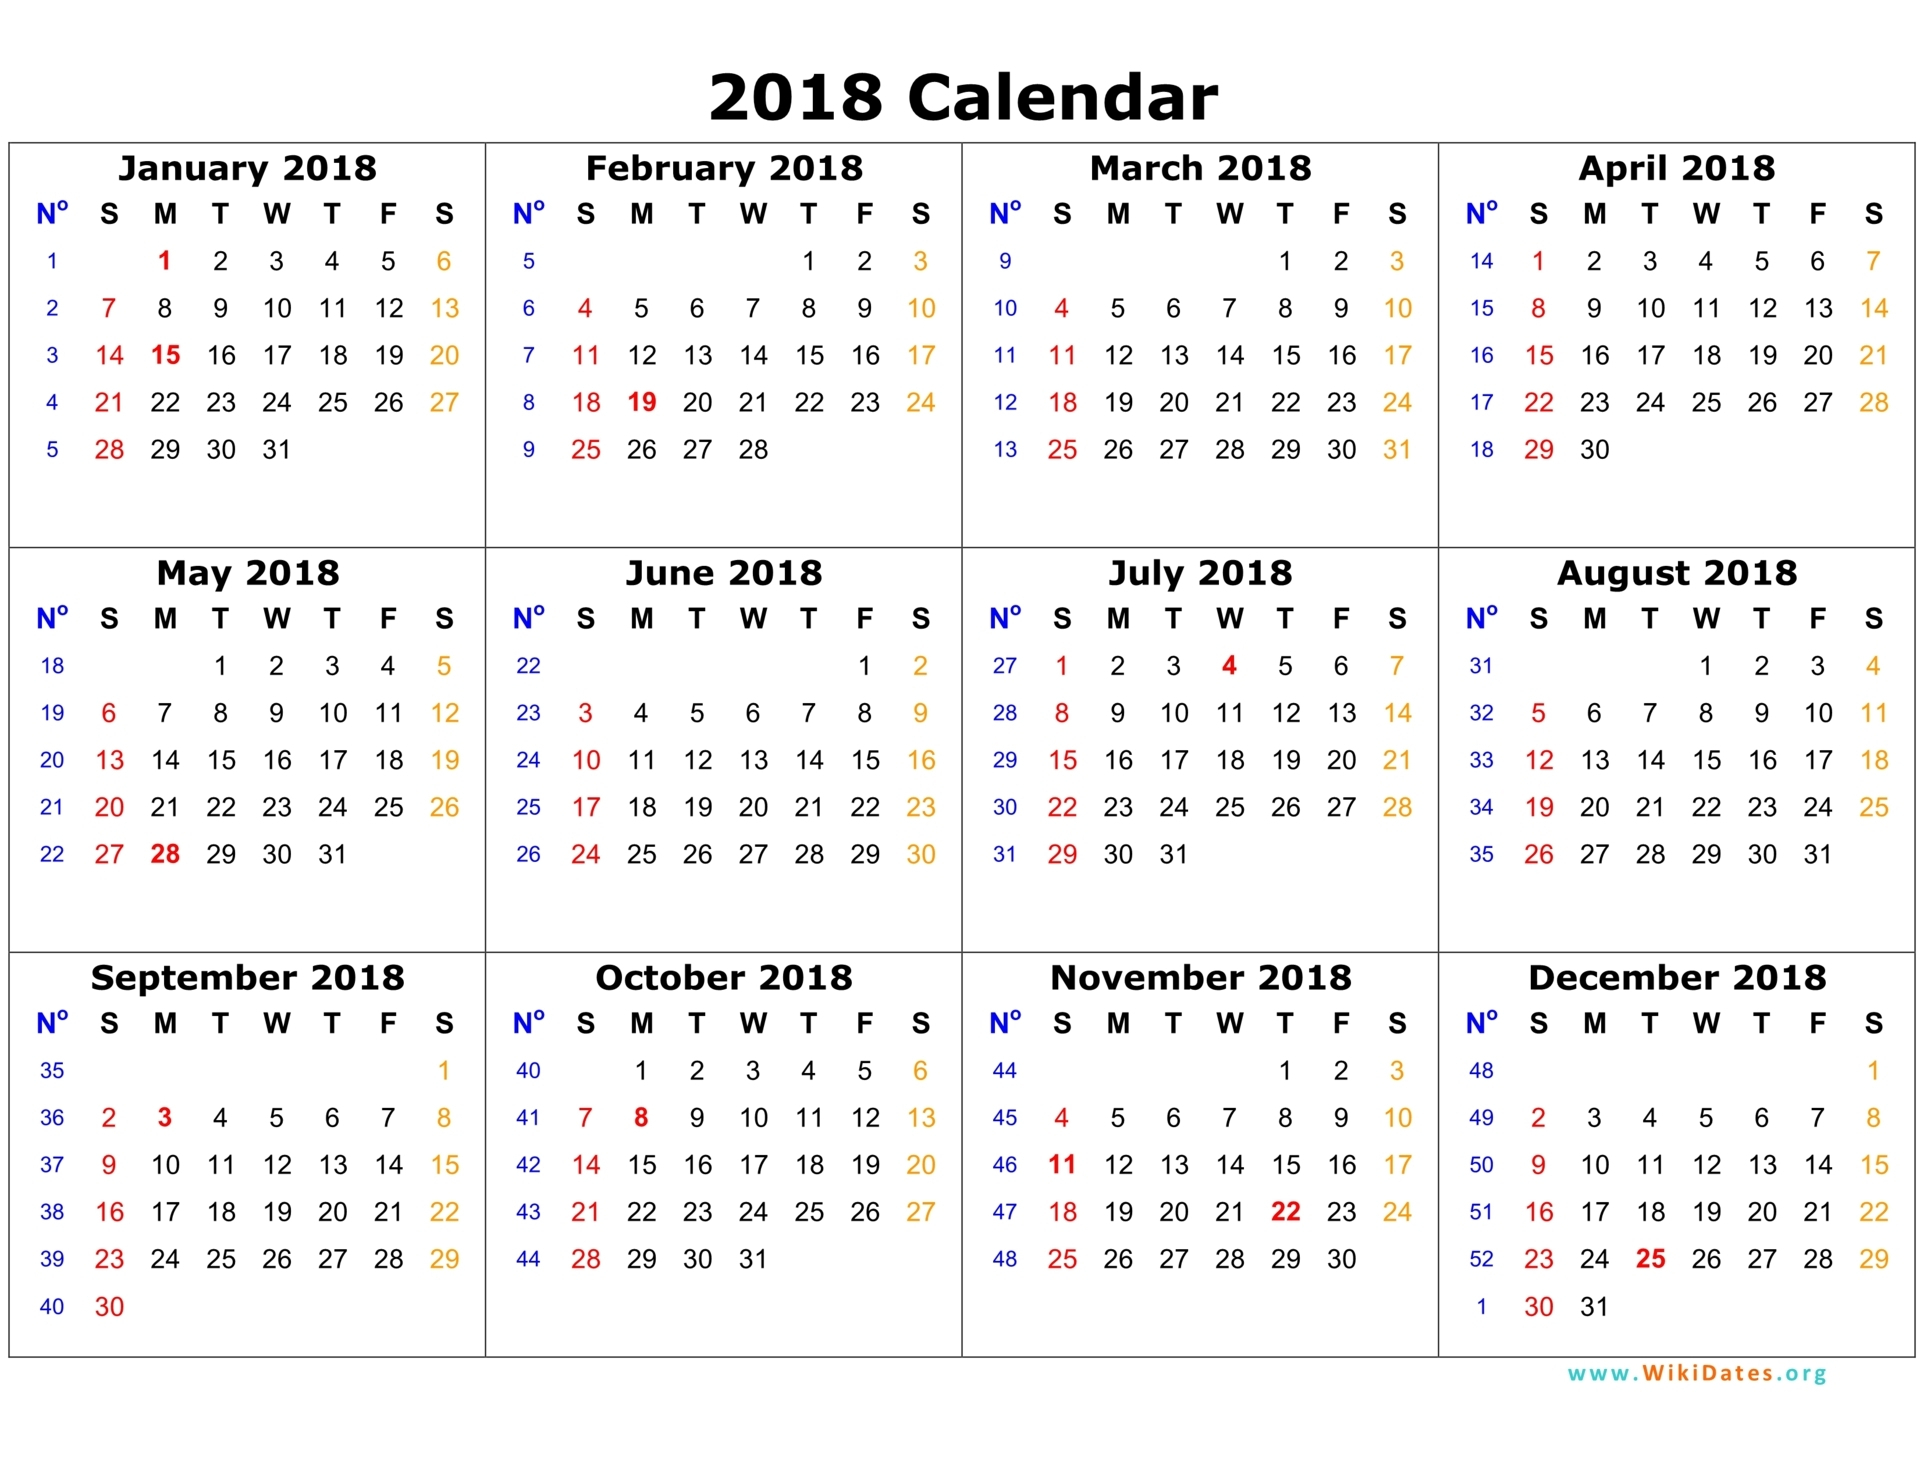 2018 Calendar | Printable | Templates | Blank Calendar | Editable intended for Printable Template For Philippine Calendar